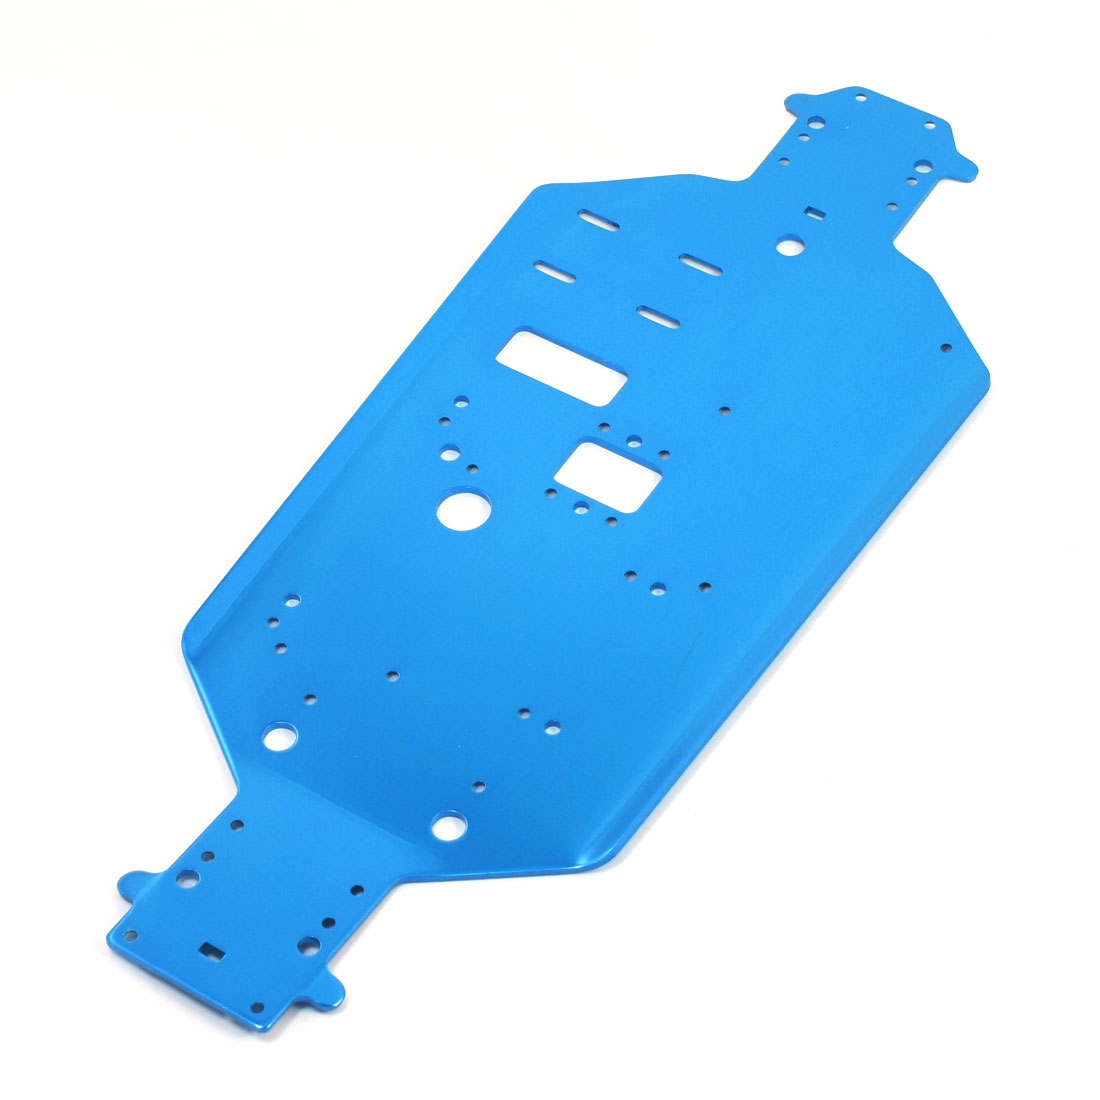 RC 1/10 Model Car Truck Buggy Replacement Blue Aluminum Chassis 06056